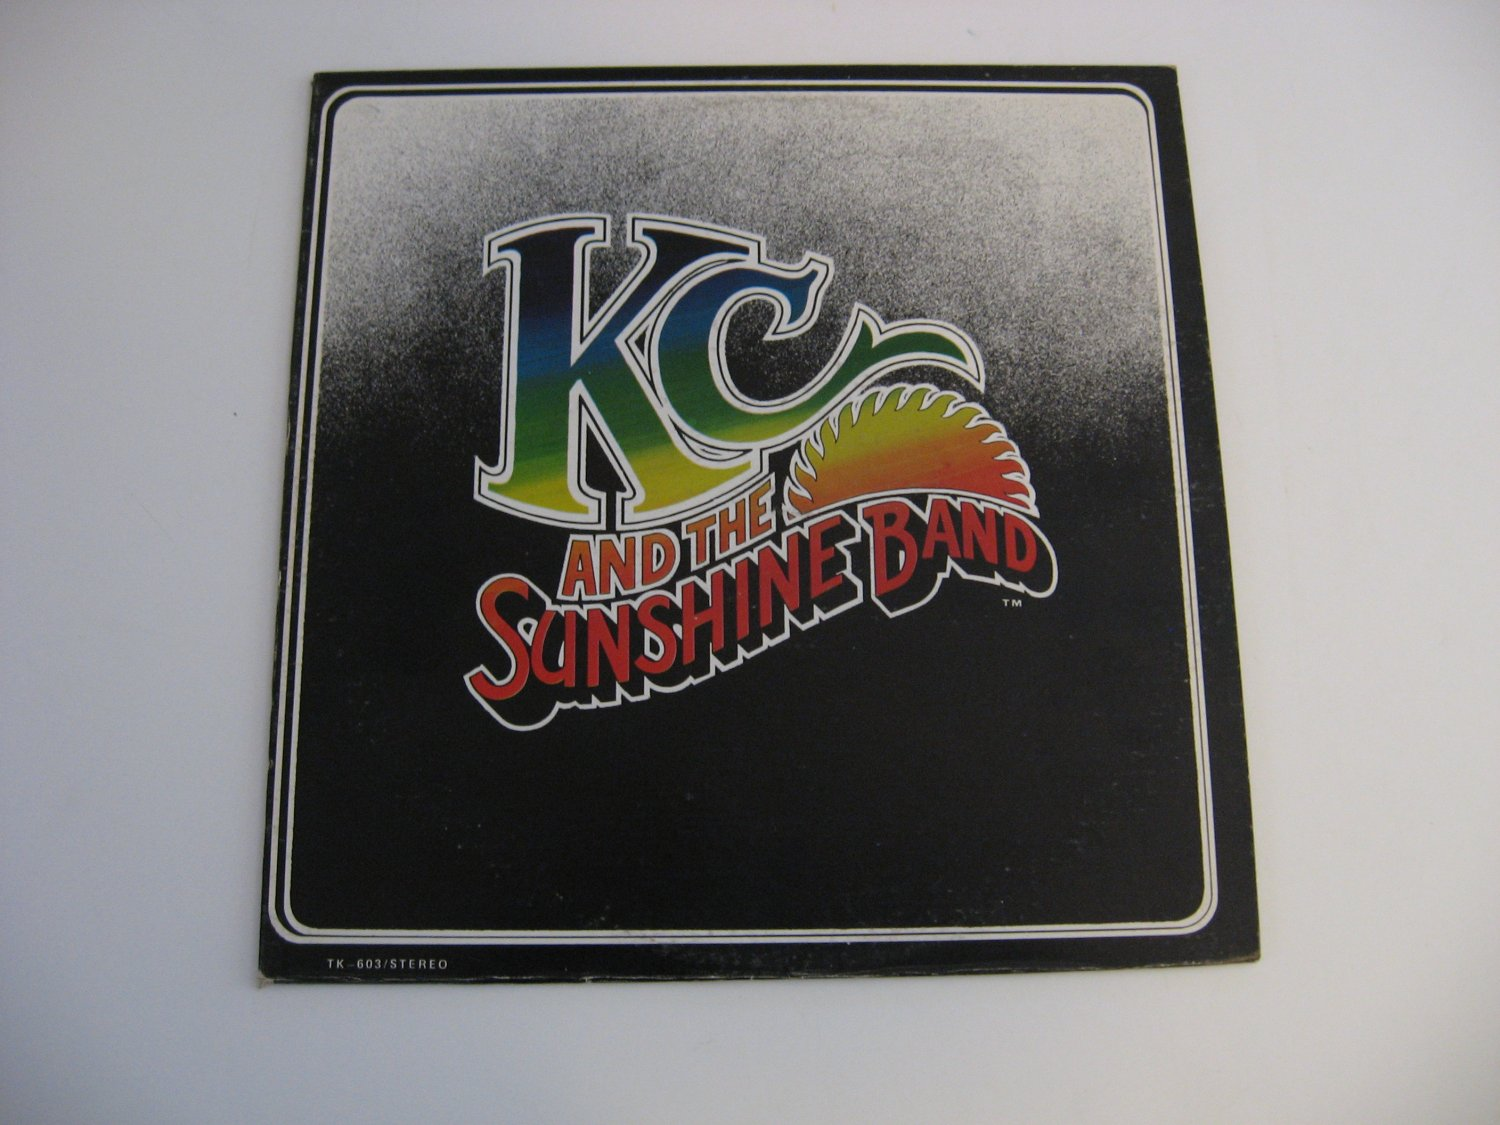 KC & The Sunshine Band - Self Titled - Circa 1975